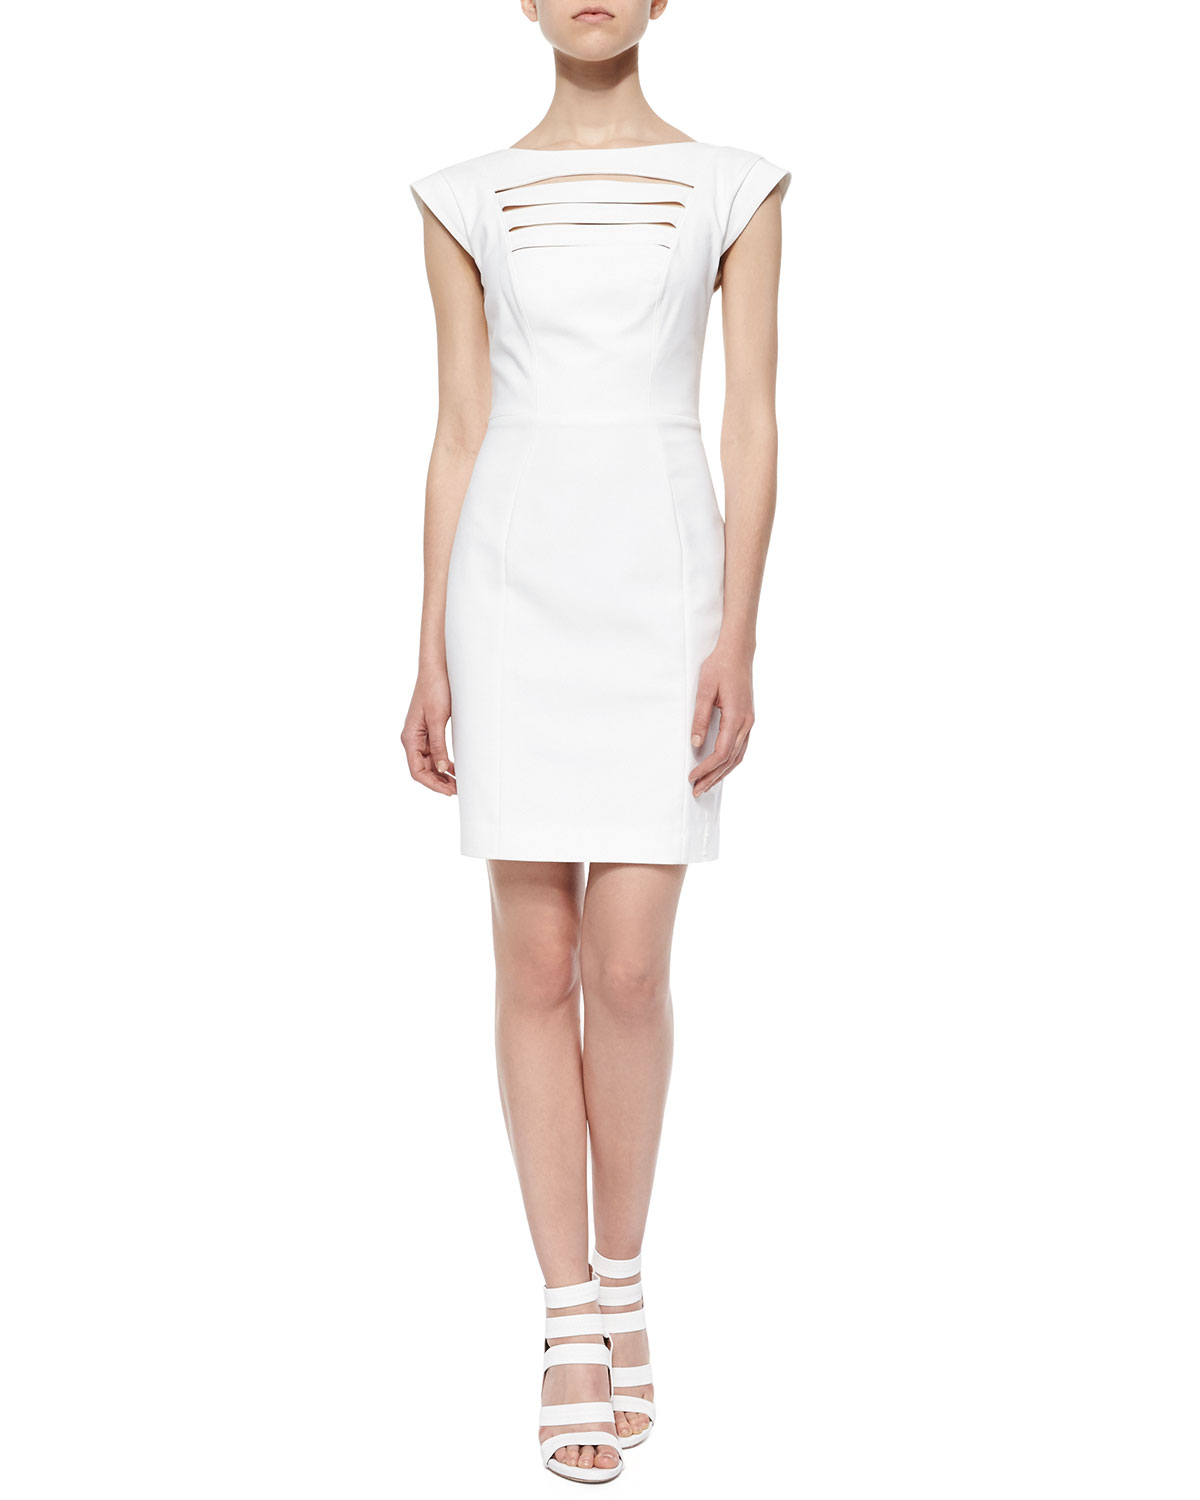 Estelle Cap-Sleeve Crepe Dress, White